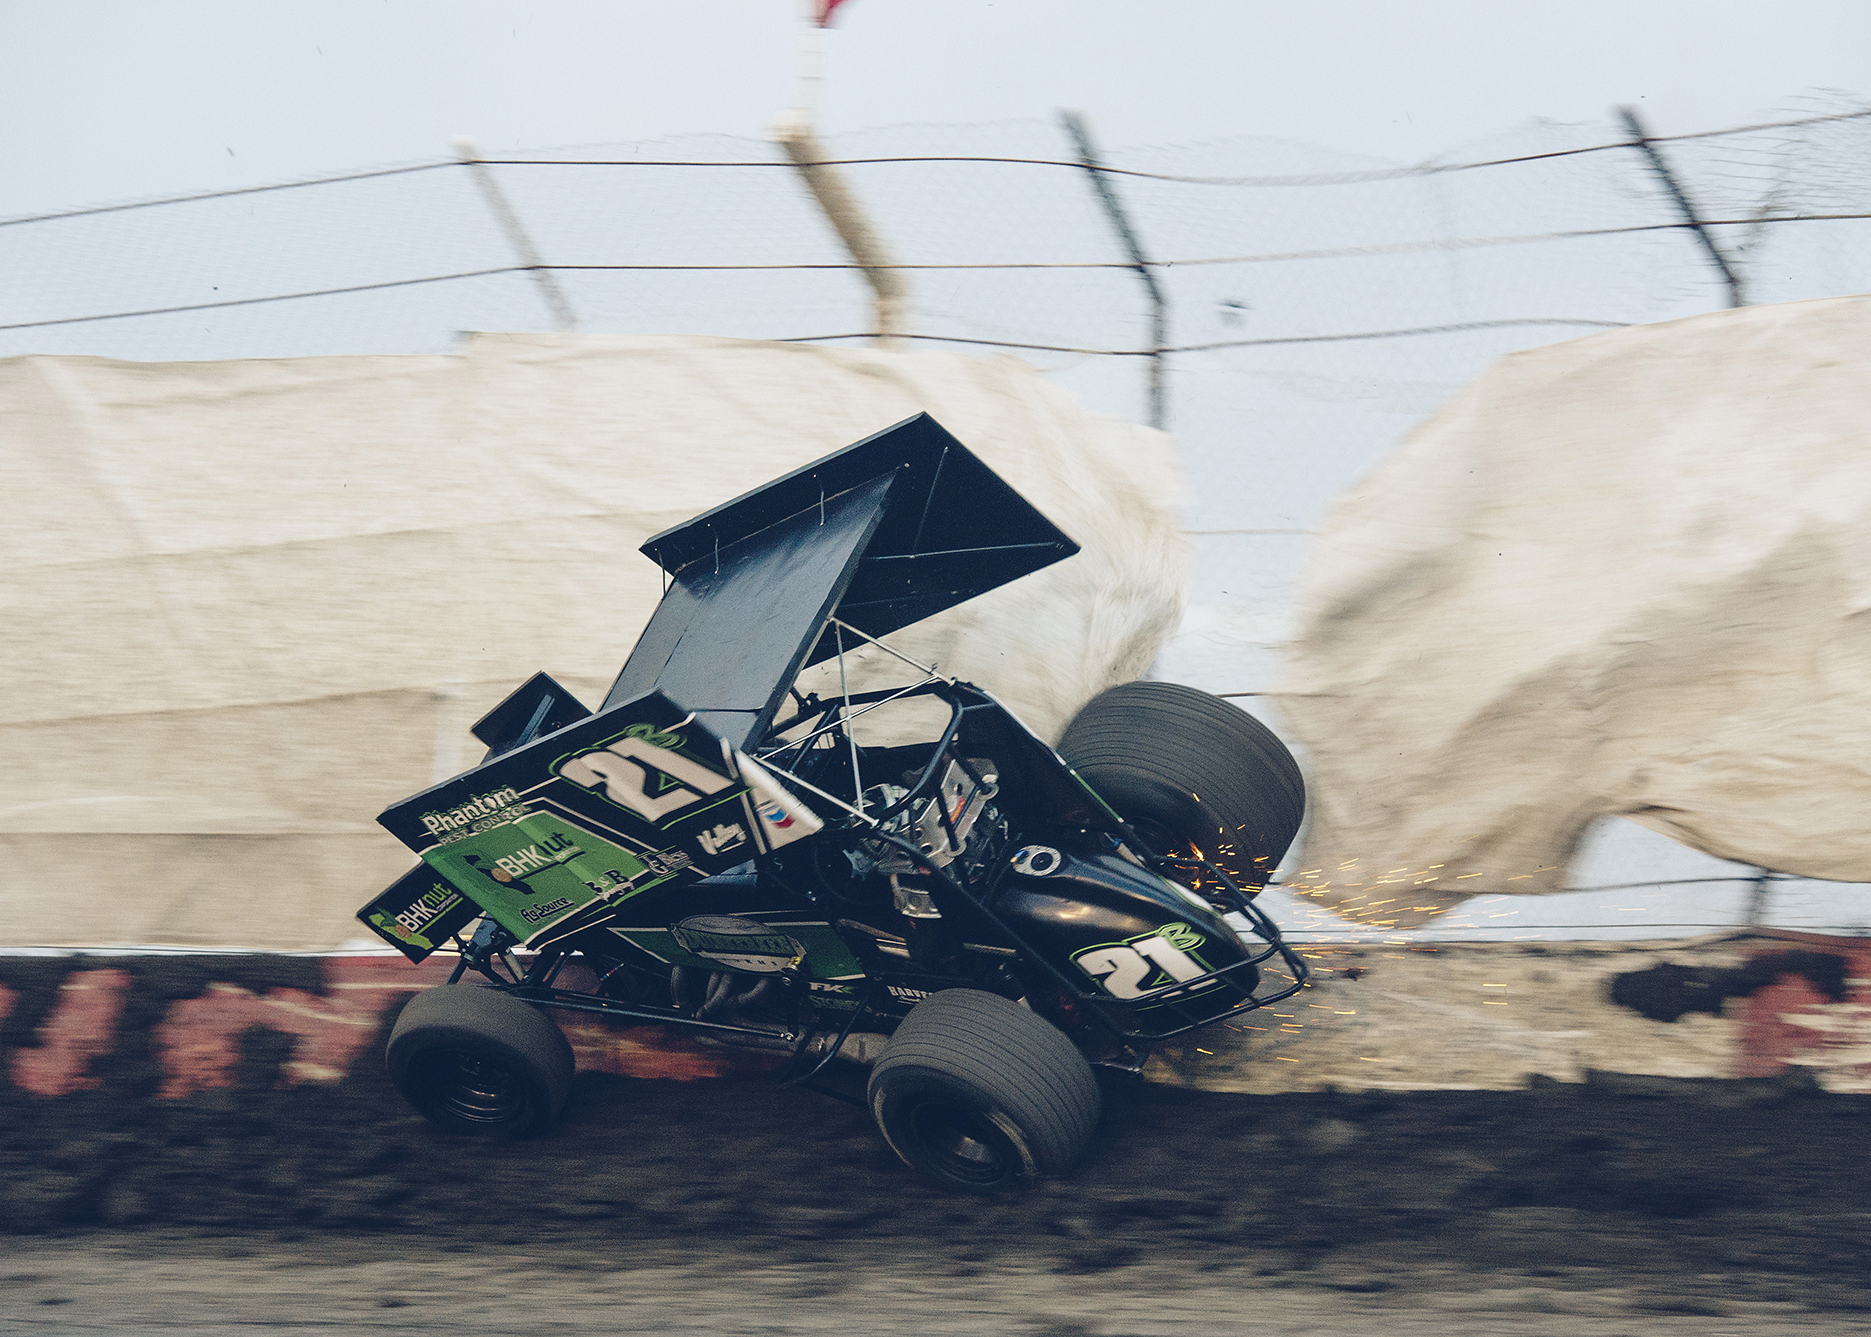 Sprint racer Dylan Black finds the ragged edge at Tulare.